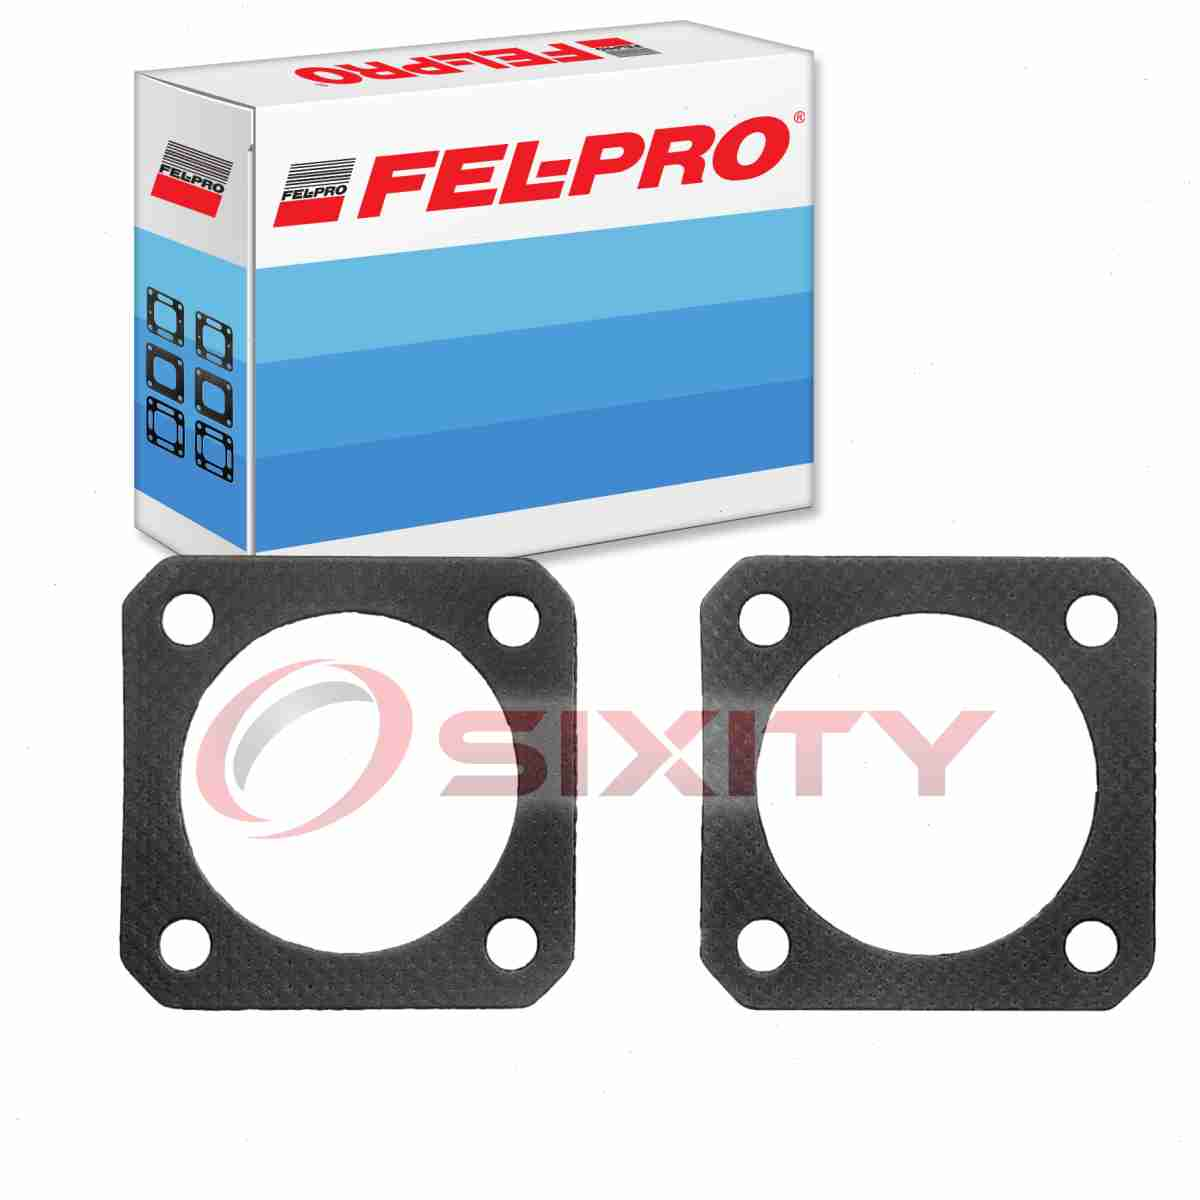 up Fel-Pro Exhaust Pipe Flange Gasket for 2005-2013 Nissan Armada FelPro